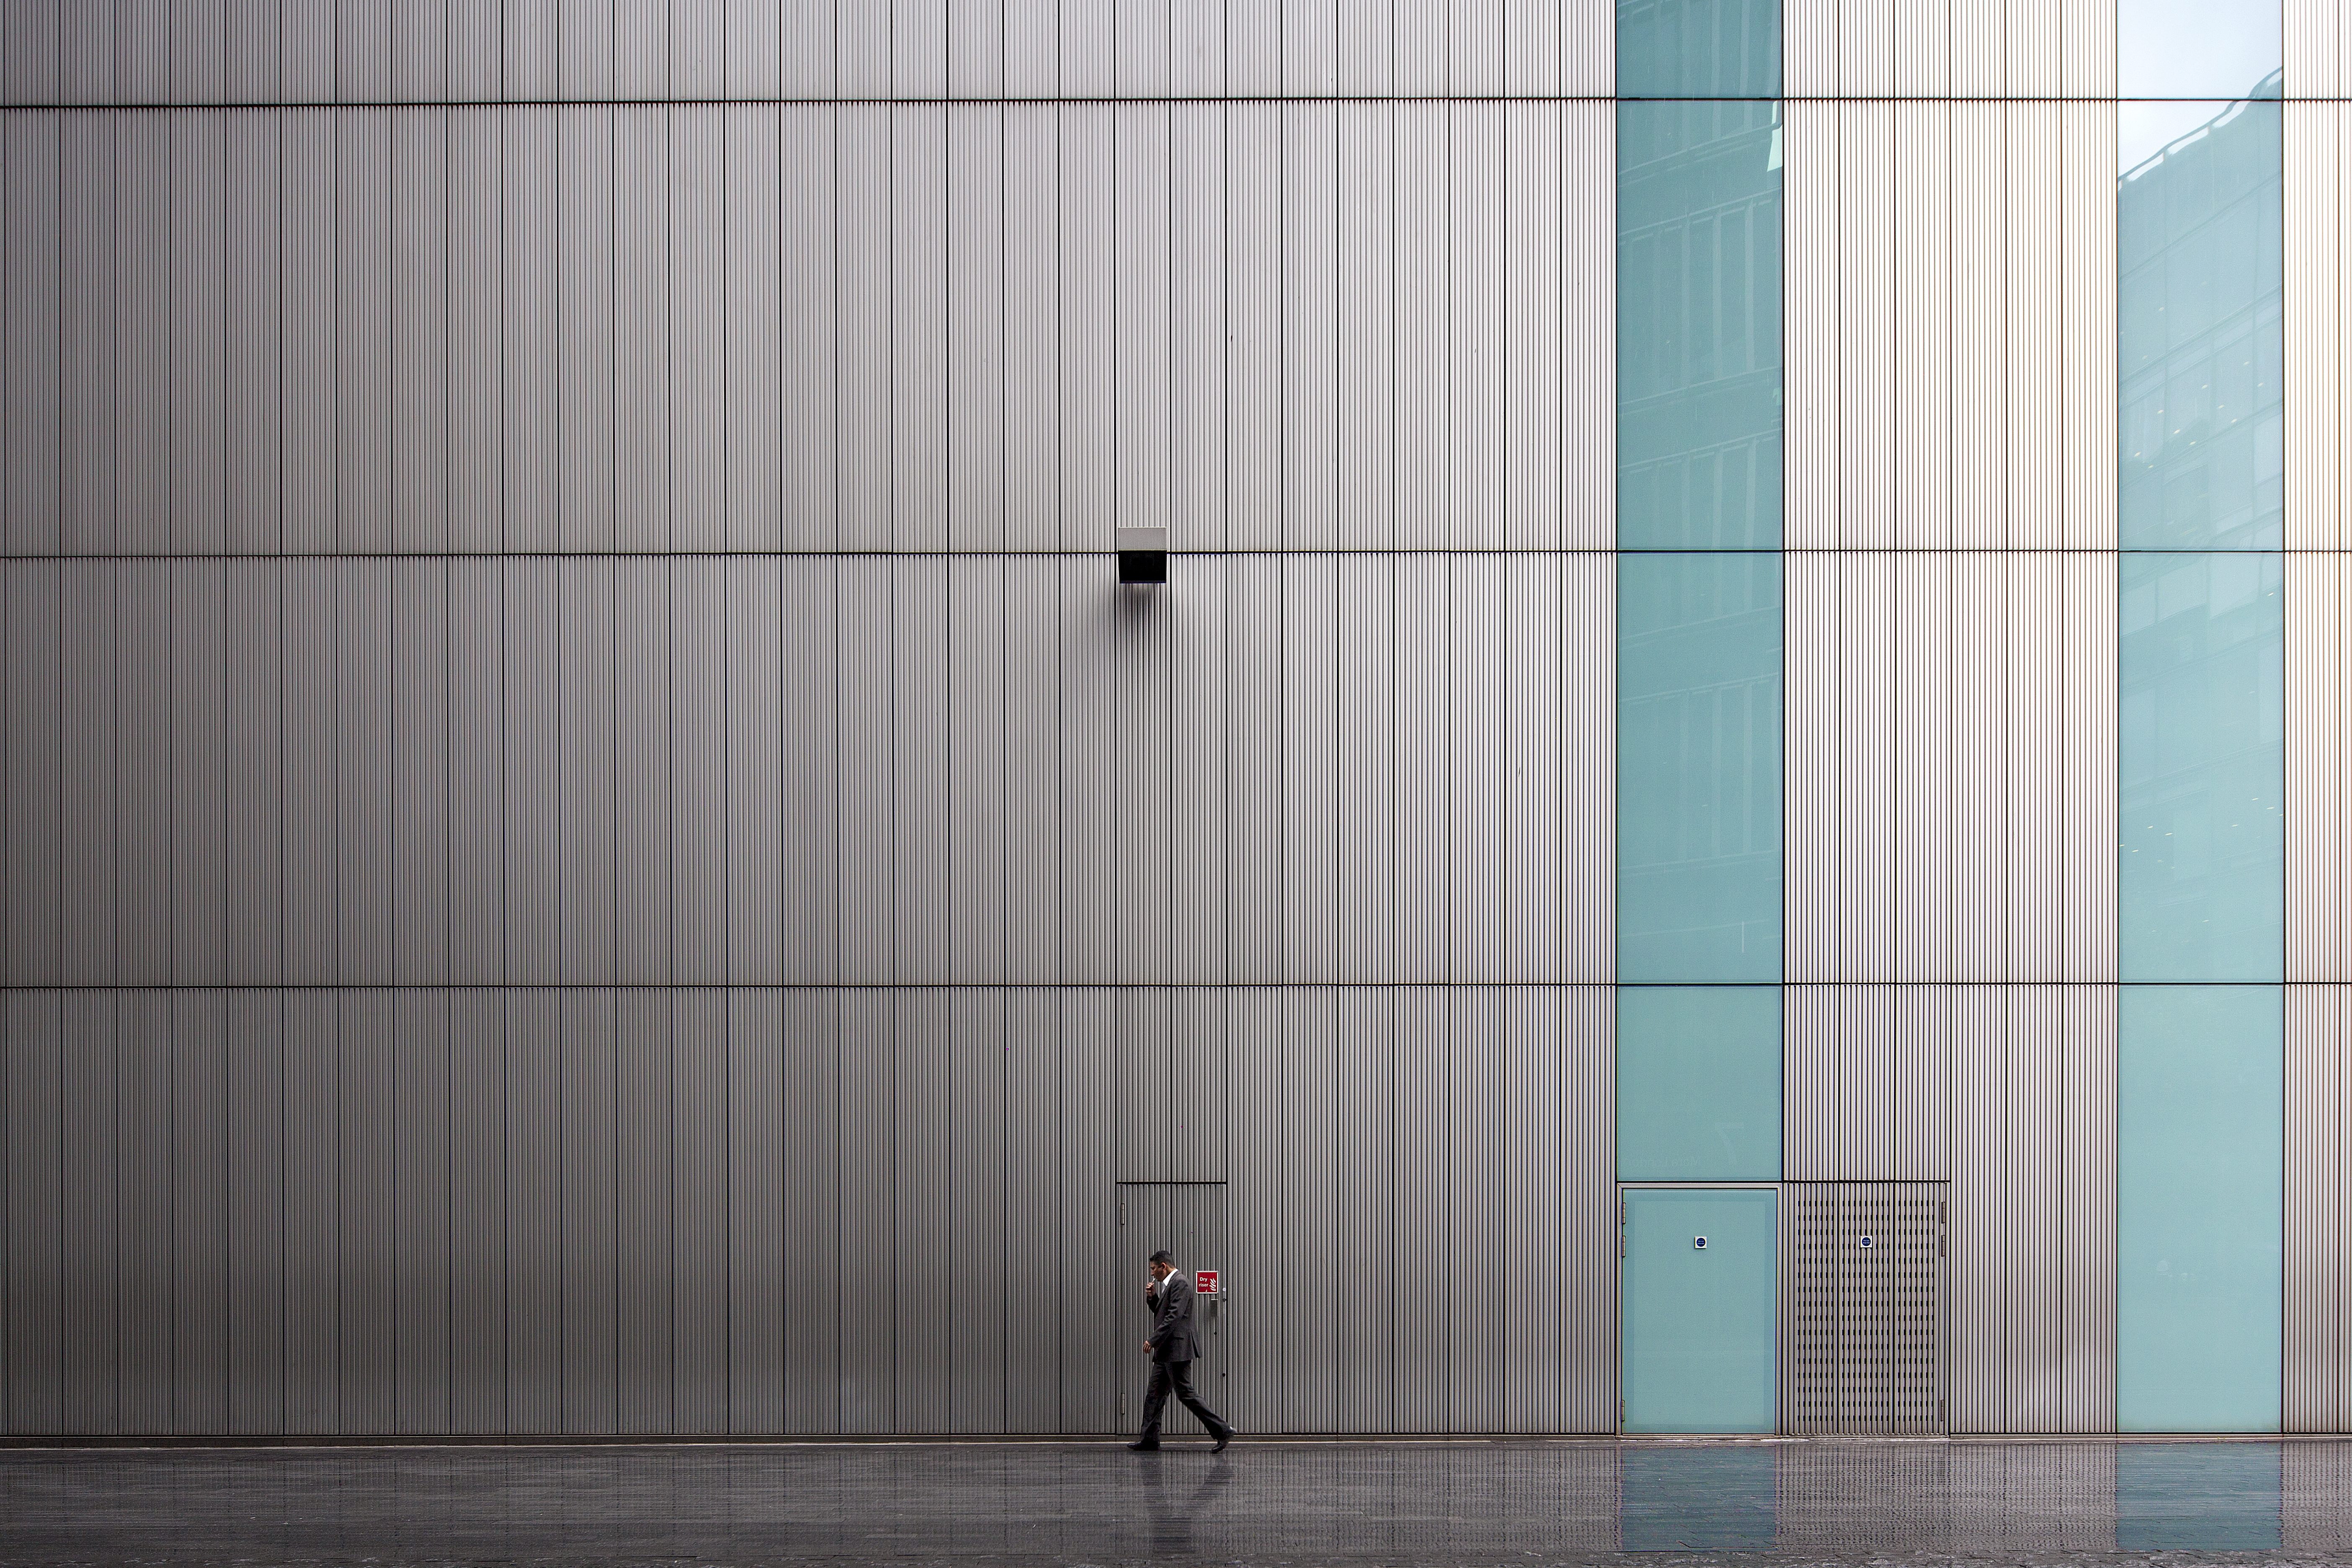 a lunch time shot in the rain of a buisness man walking in front of a large office building